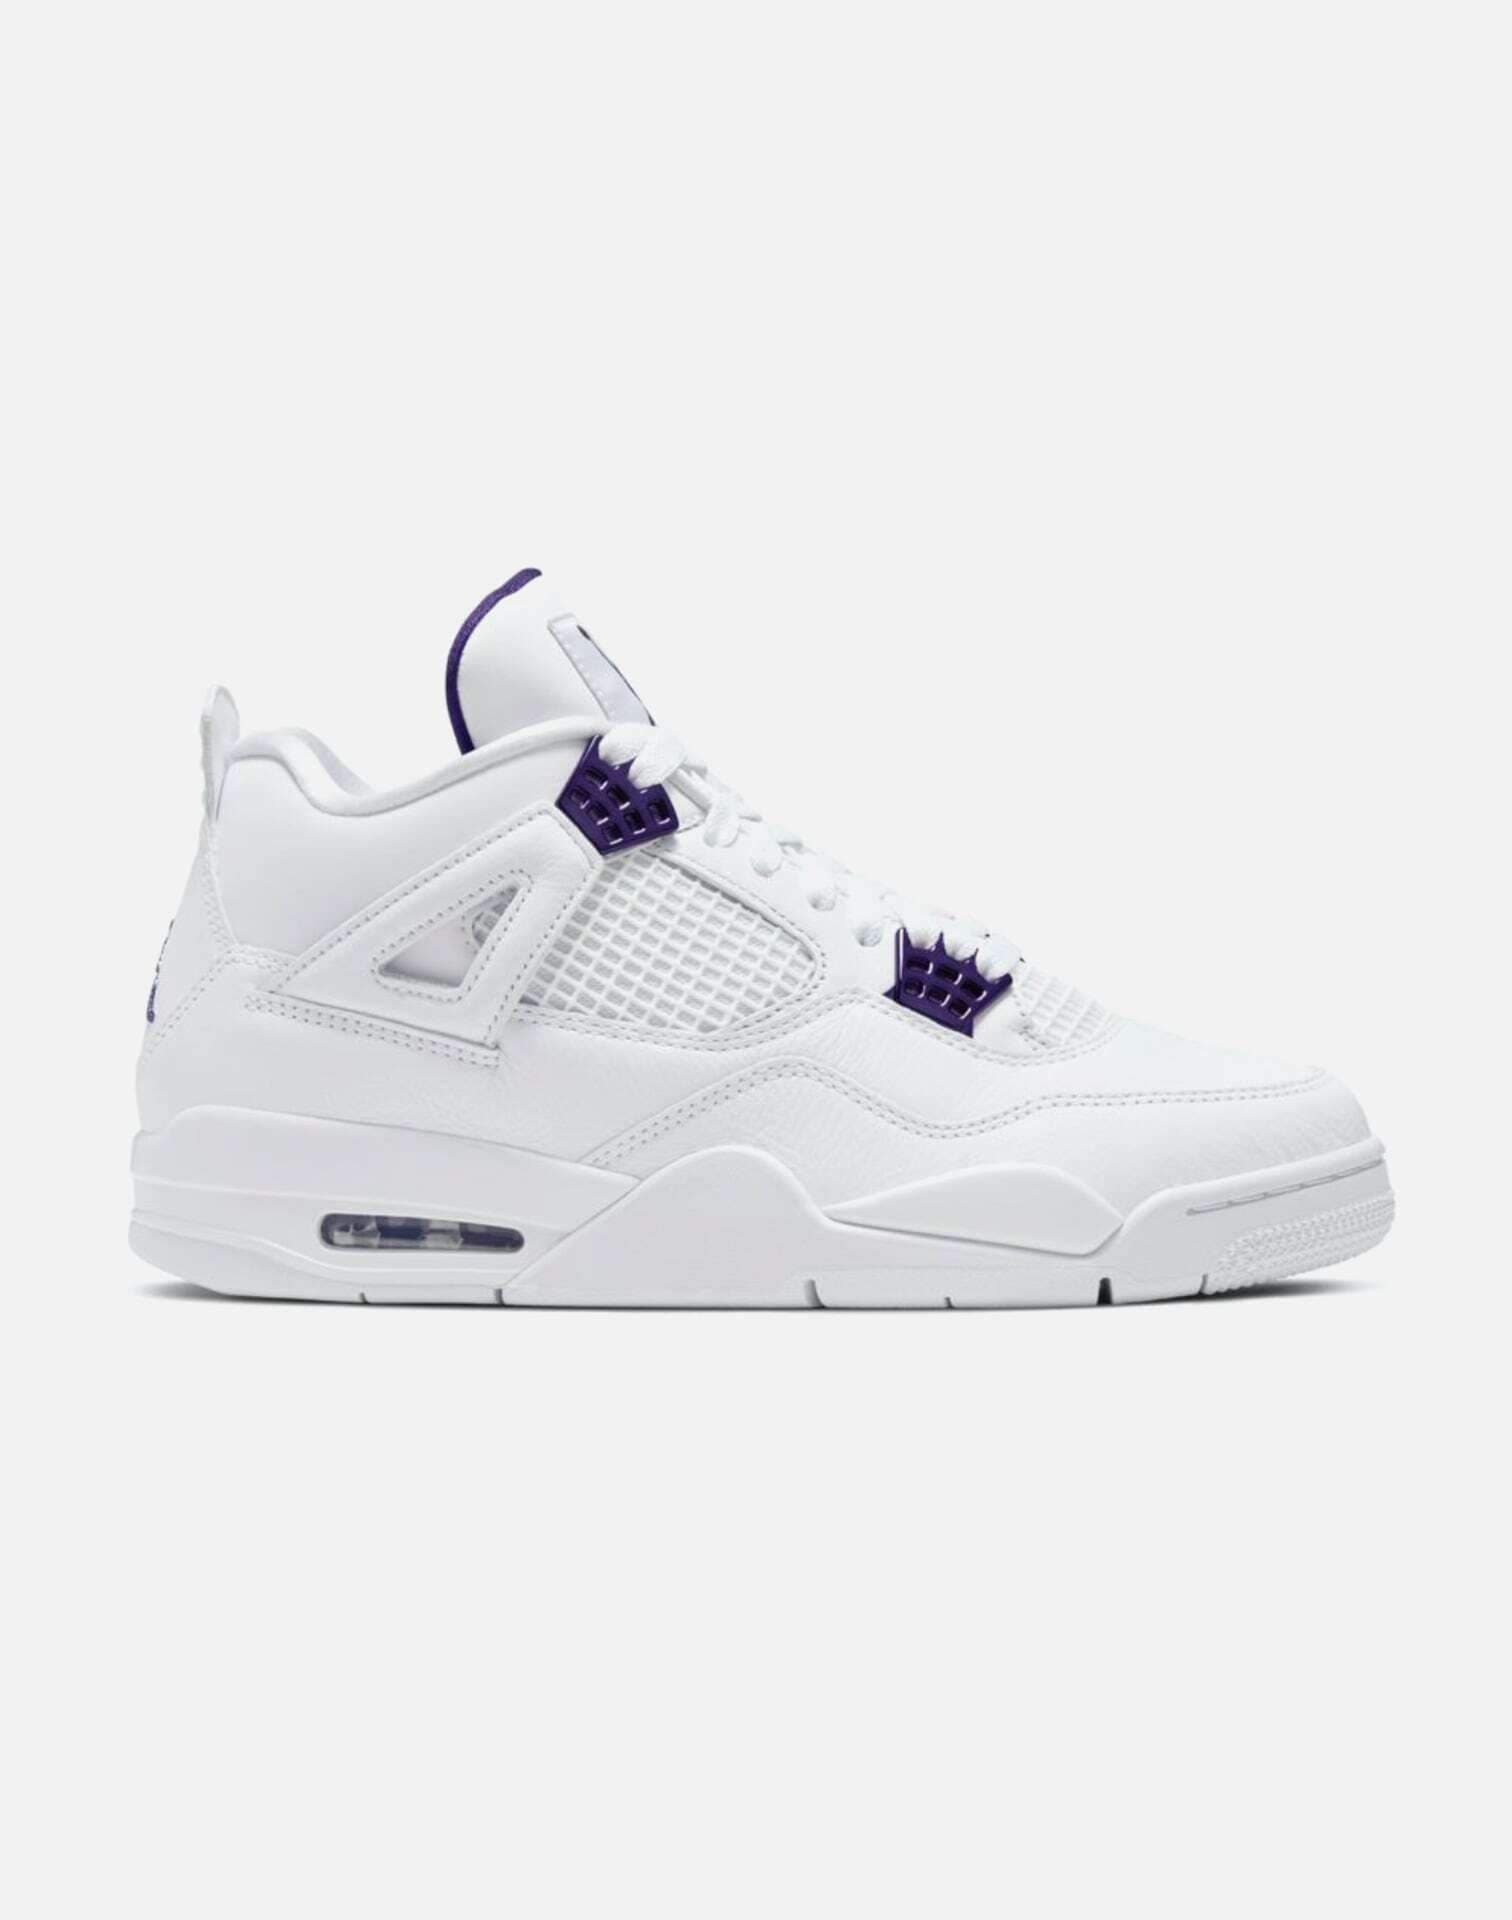 Jordan AIR JORDAN RETRO 4 'COURT PURPLE'